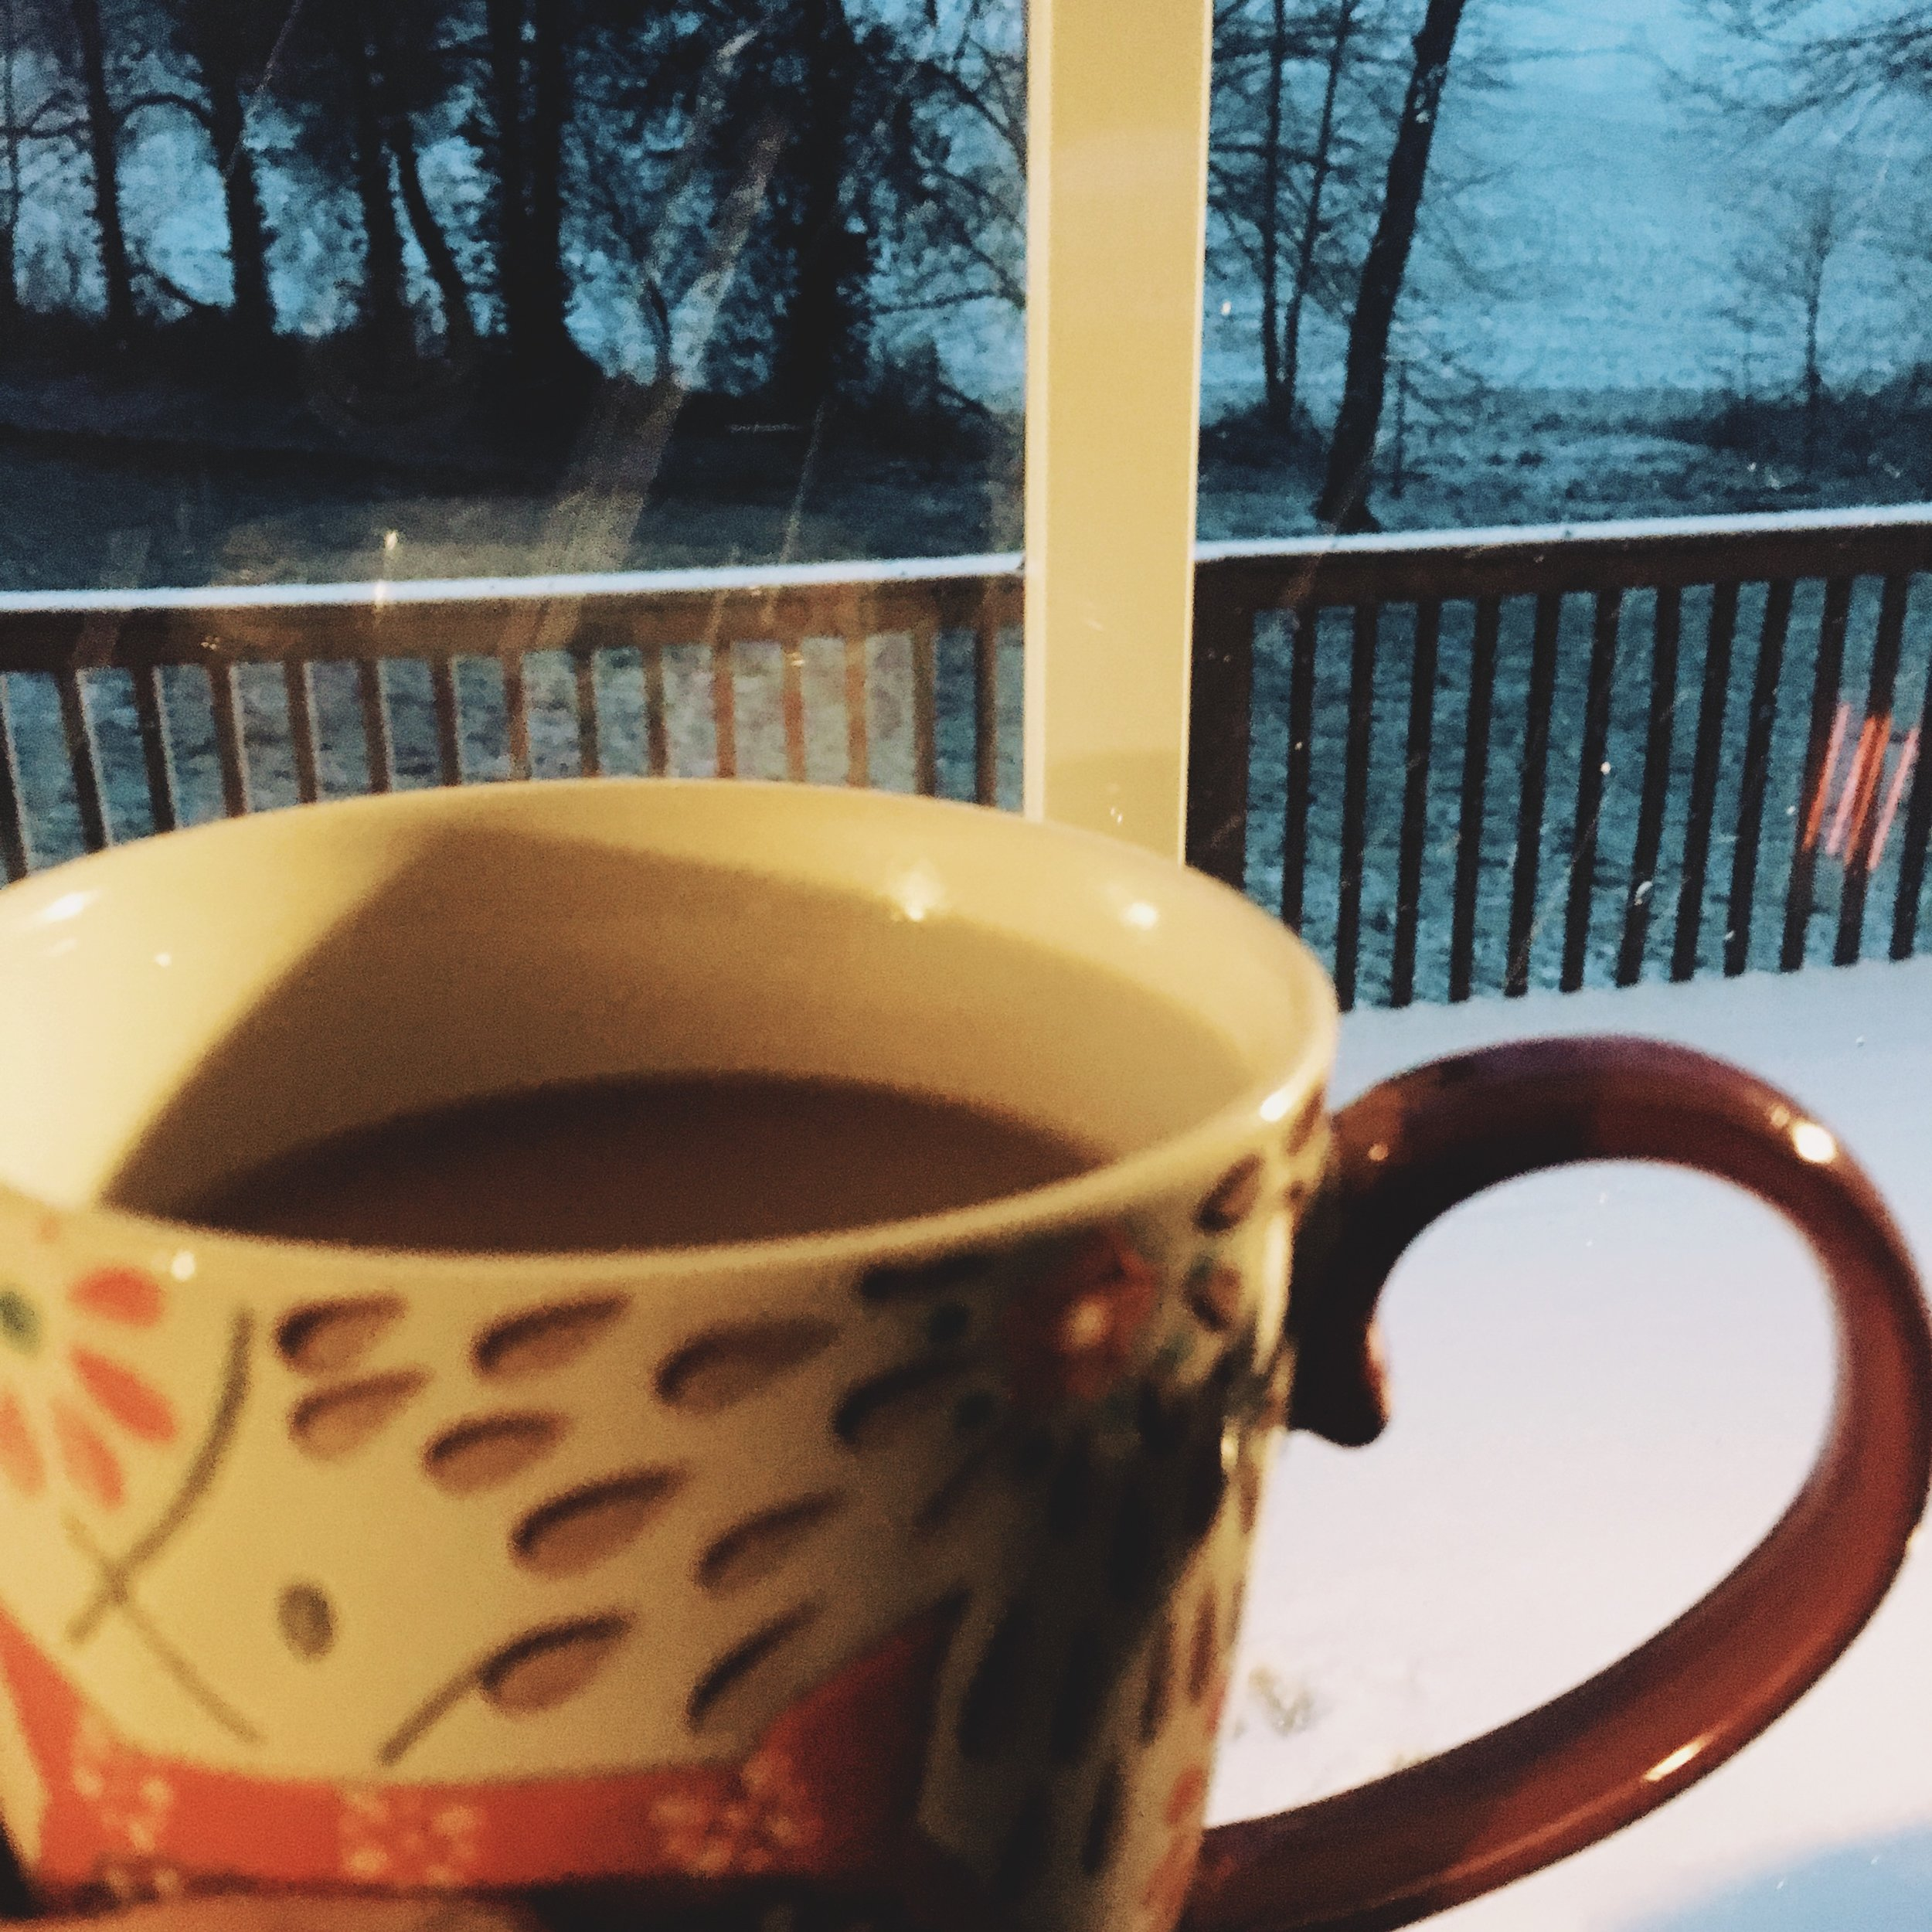 Snow & Coffee in March